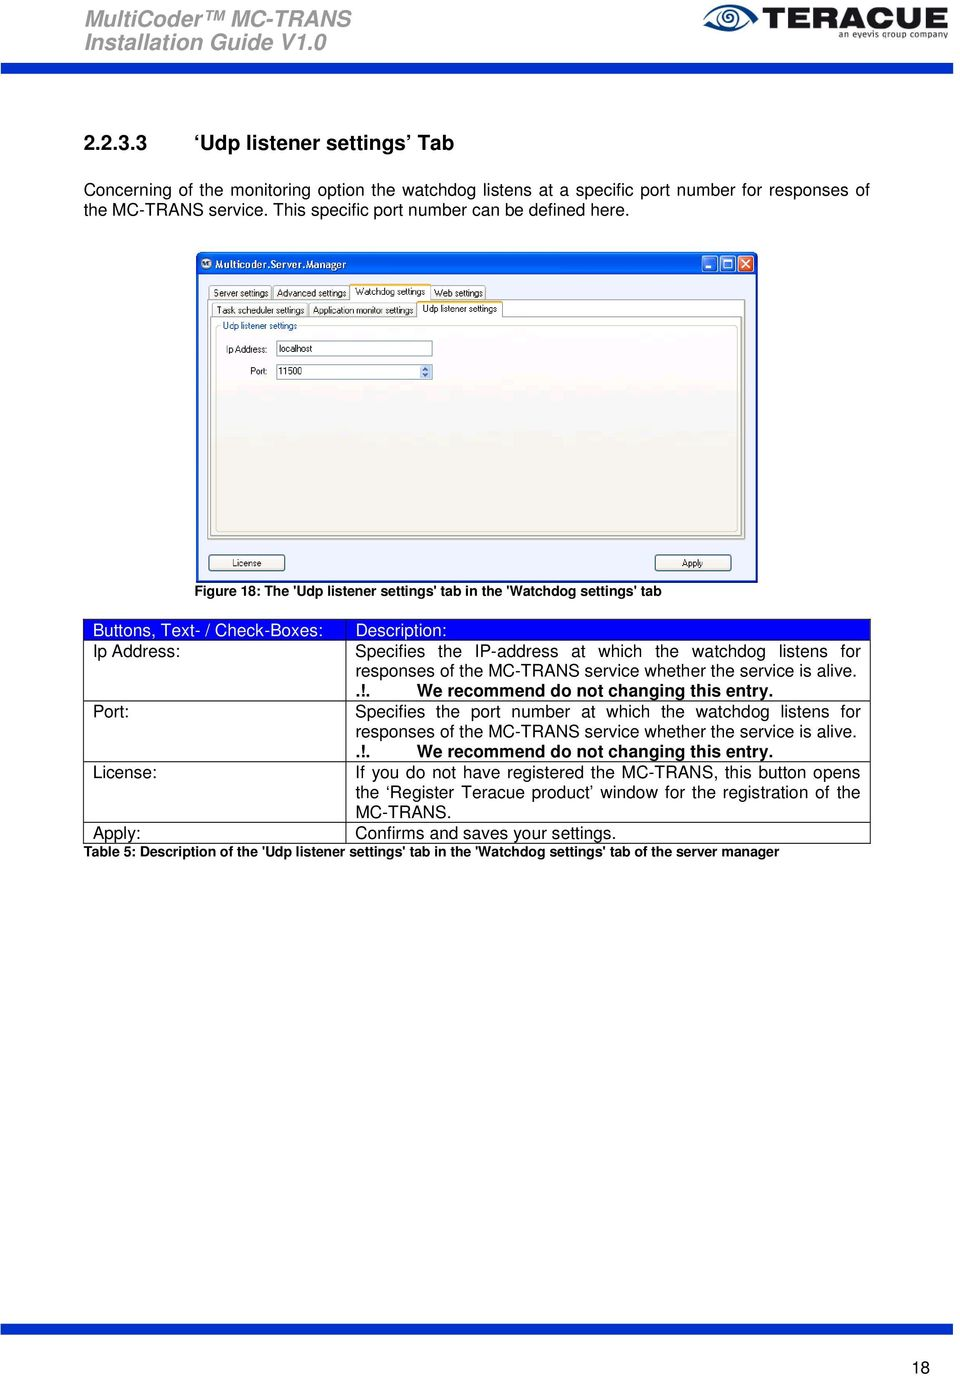 Figure 18: The 'Udp listener settings' tab in the 'Watchdog settings' tab Buttons, Text- / Check-Boxes: Description: Ip Address: Specifies the IP-address at which the watchdog listens for responses